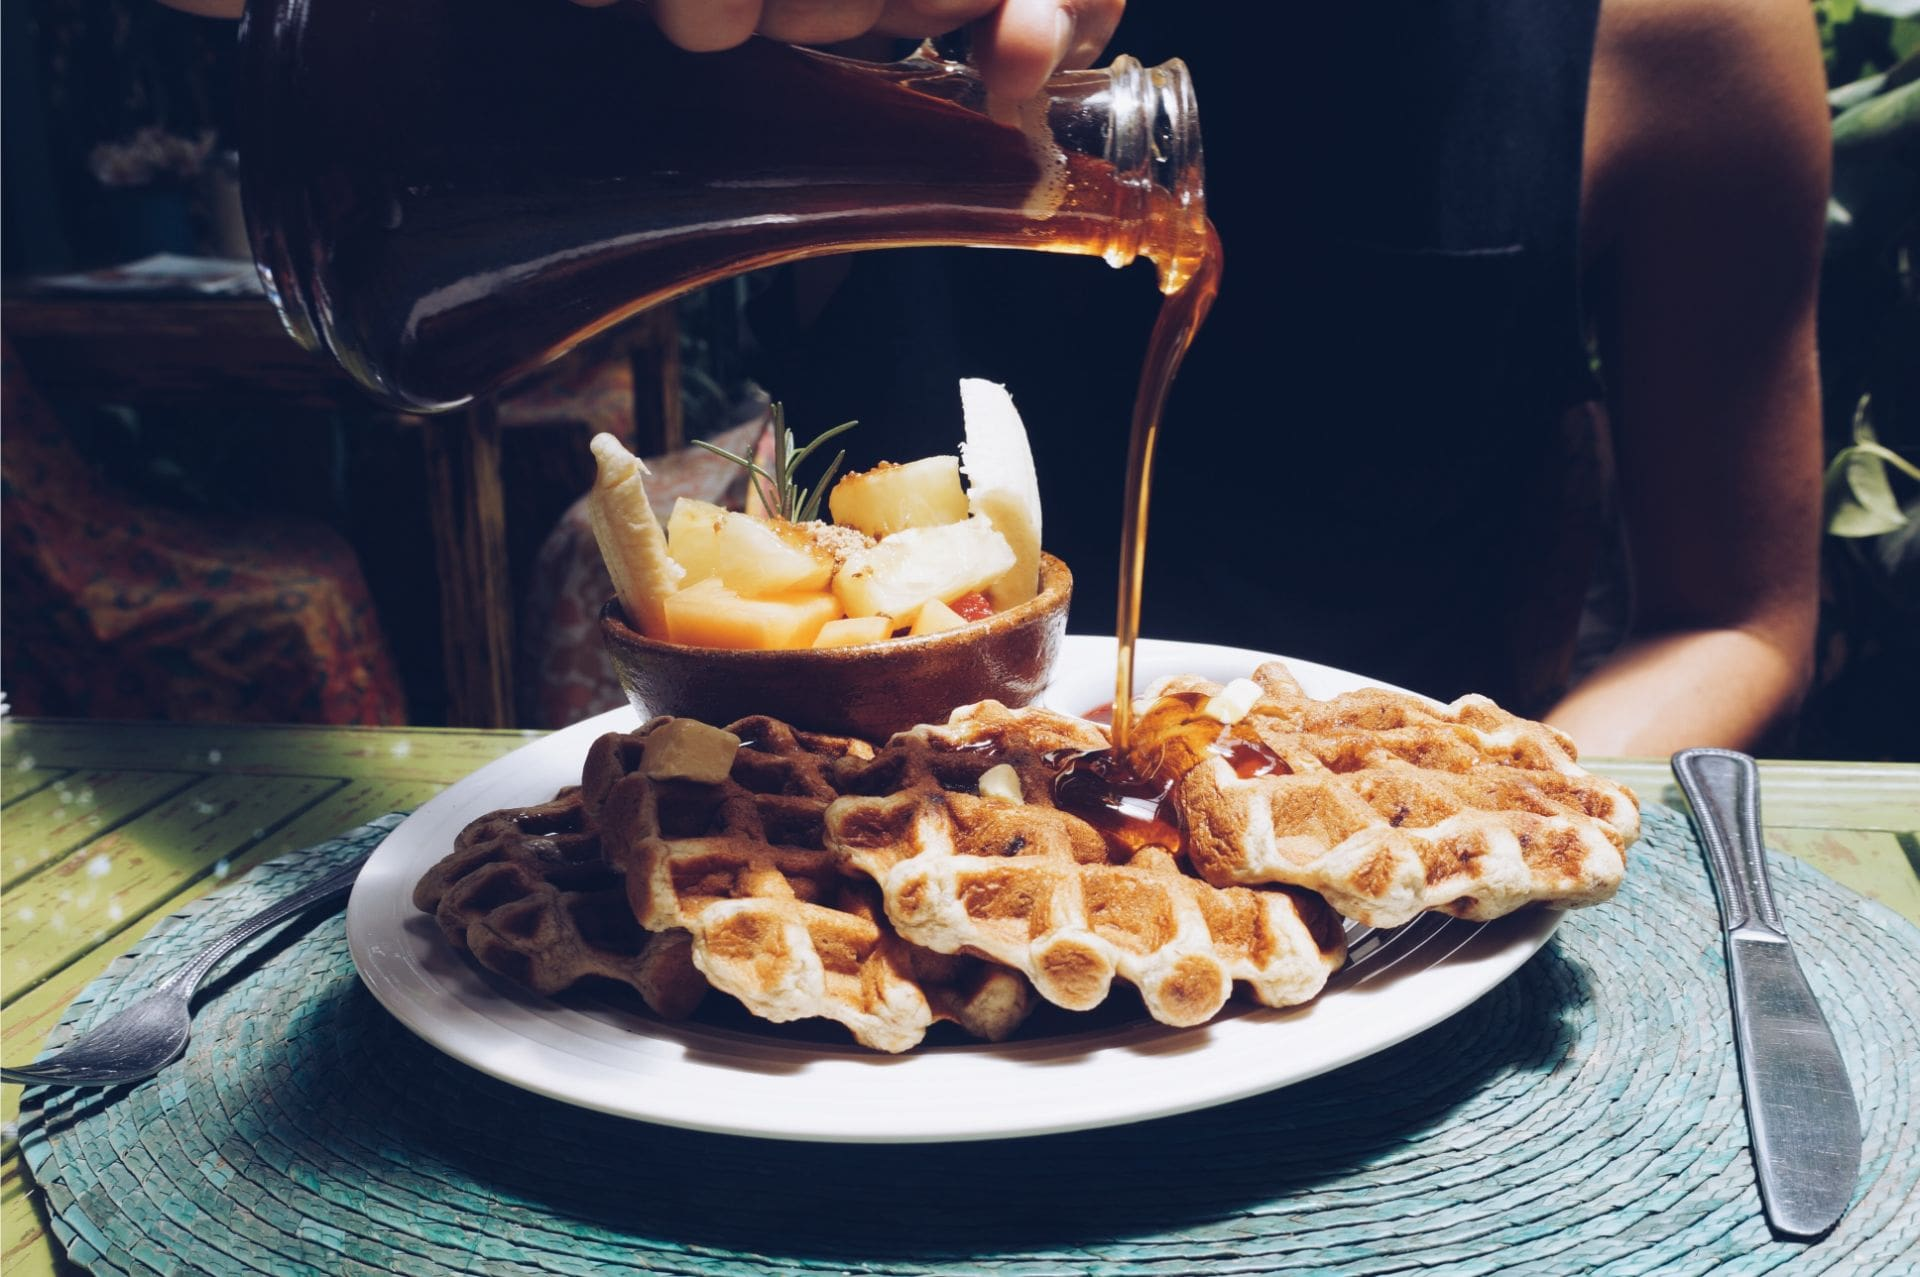 woman-pouring-maple-syrup-over-belgian-waffles-at-restaurant